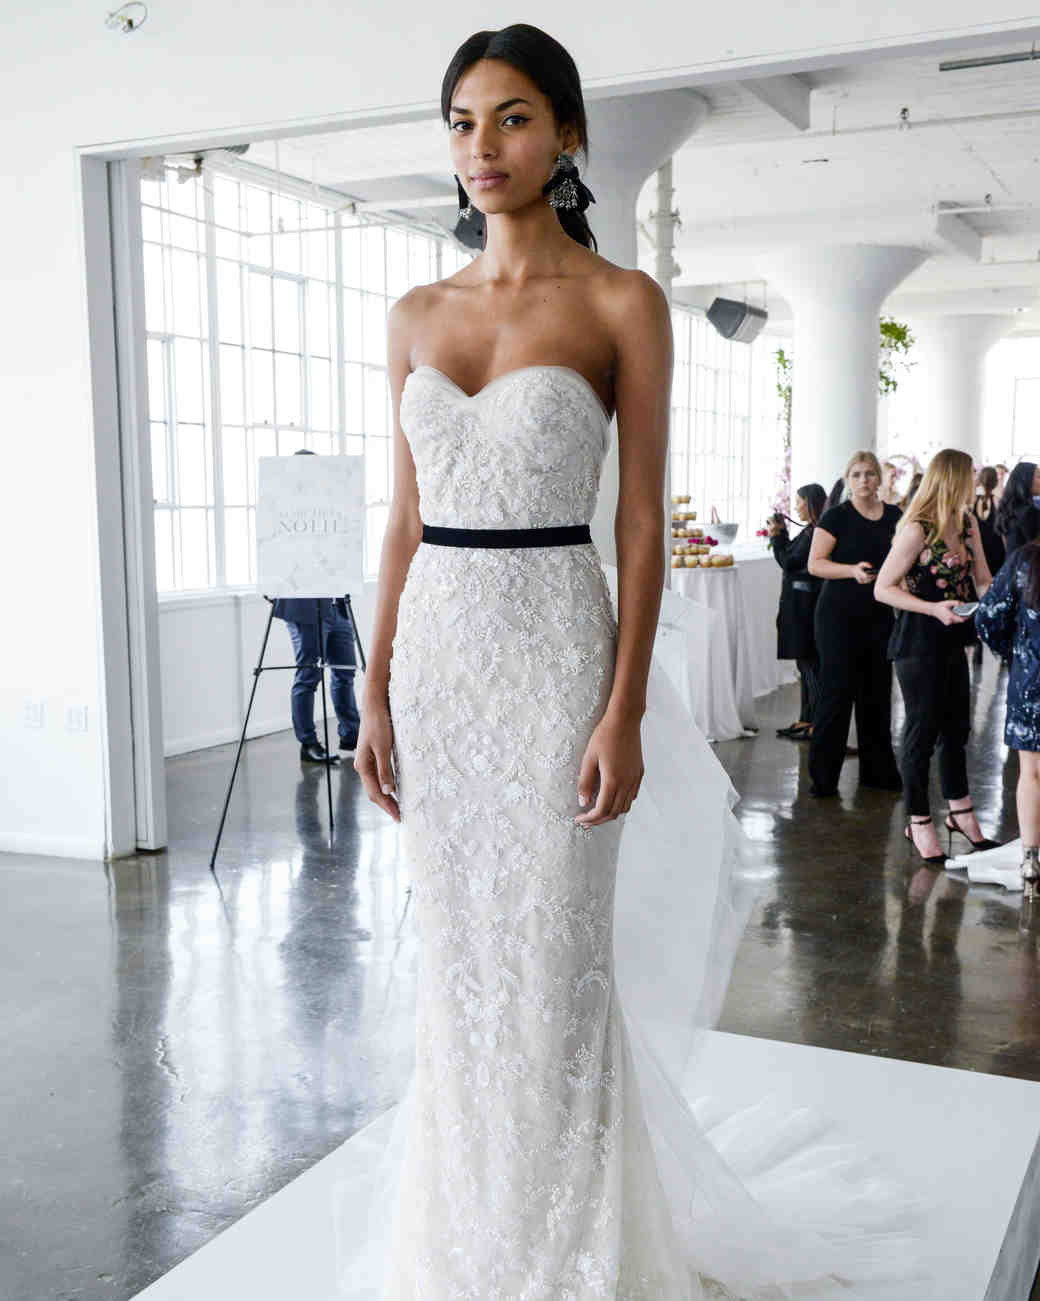 marchesa wedding dresses spring marchesa wedding dresses marchesa spring strapless wedding dress with beaded details